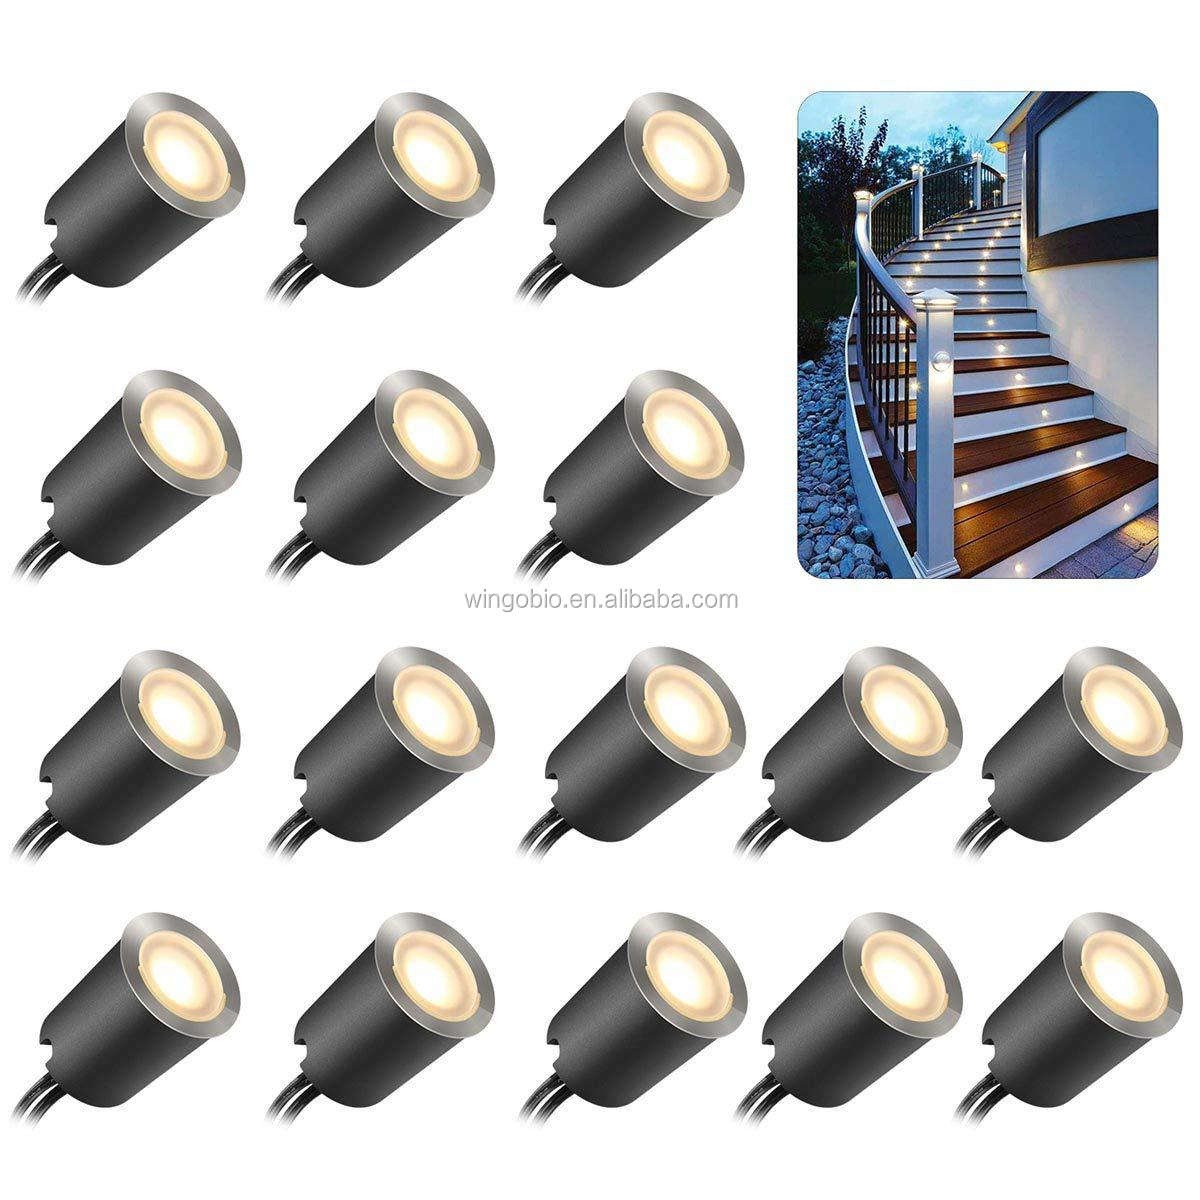 Dankers 16pcs LED Deklicht Kits 32mm SMY LED IP67 Waterdichte 12V Laagspanning In Ground Outdoor patio Landschap Verlichting